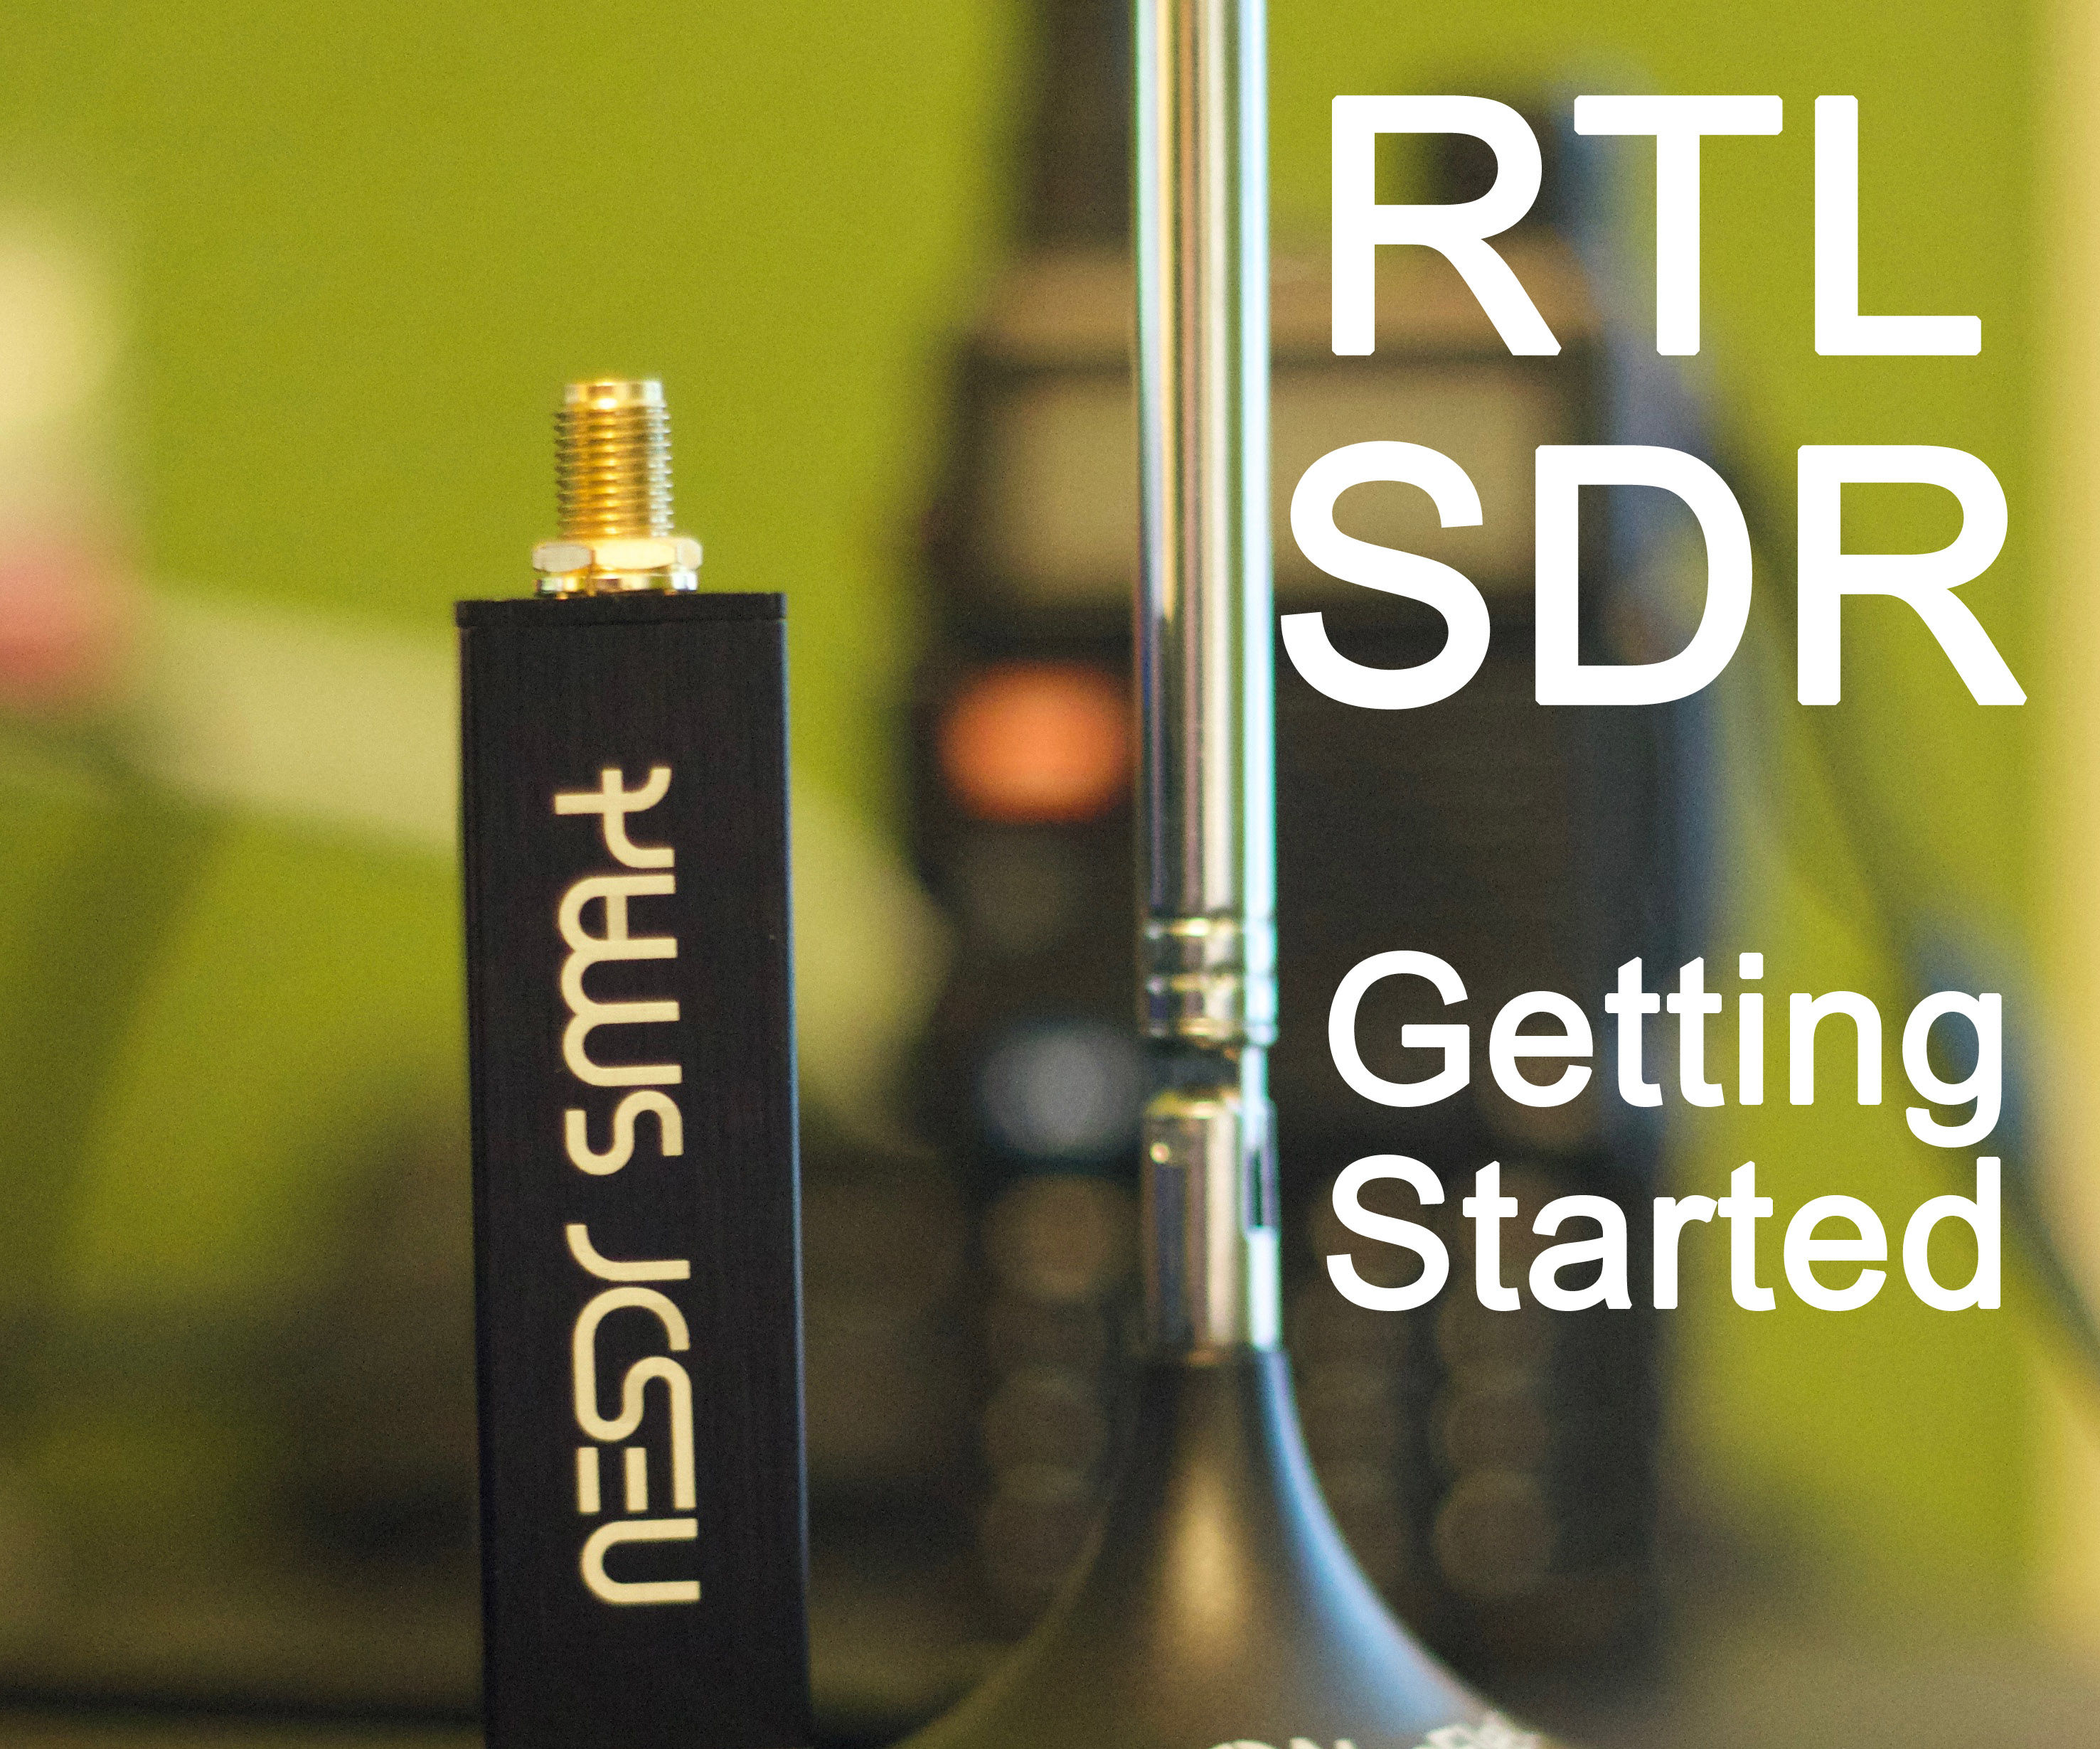 Using an RTL-SDR Dongle